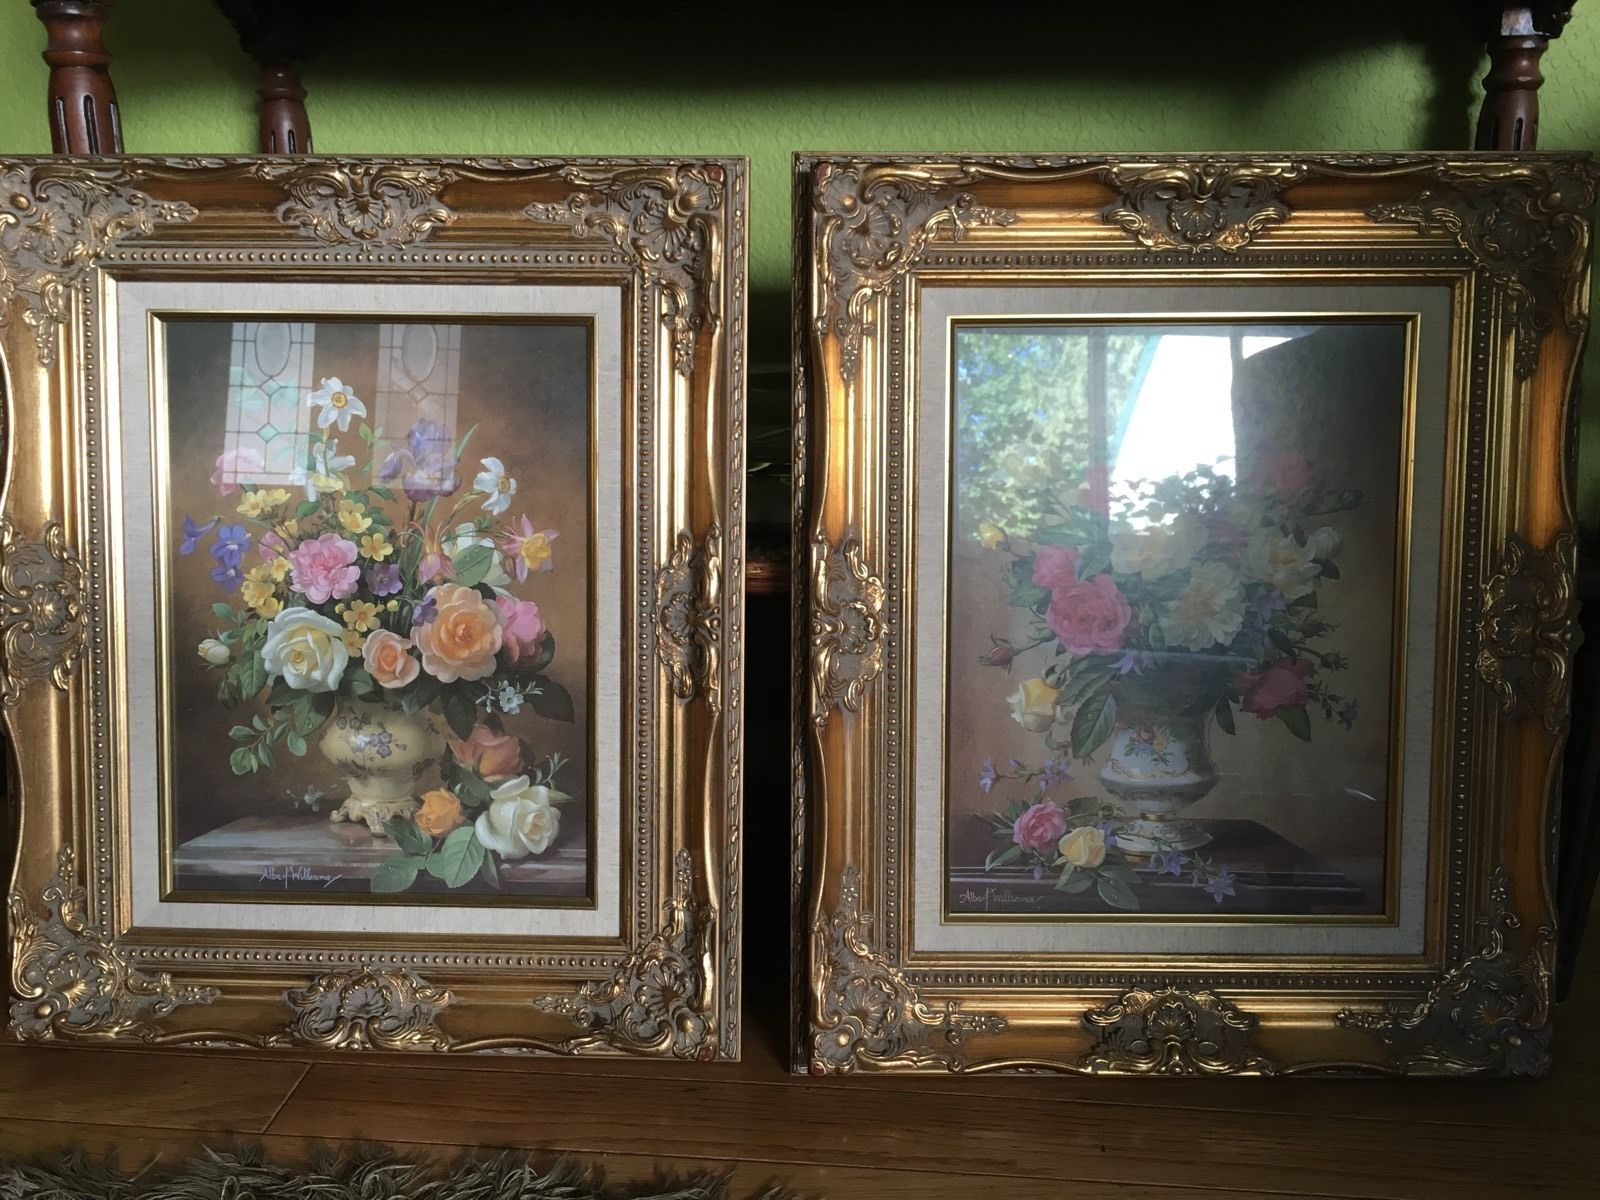 Very rare large home interior beautiful floral pictures by albert williams ebay